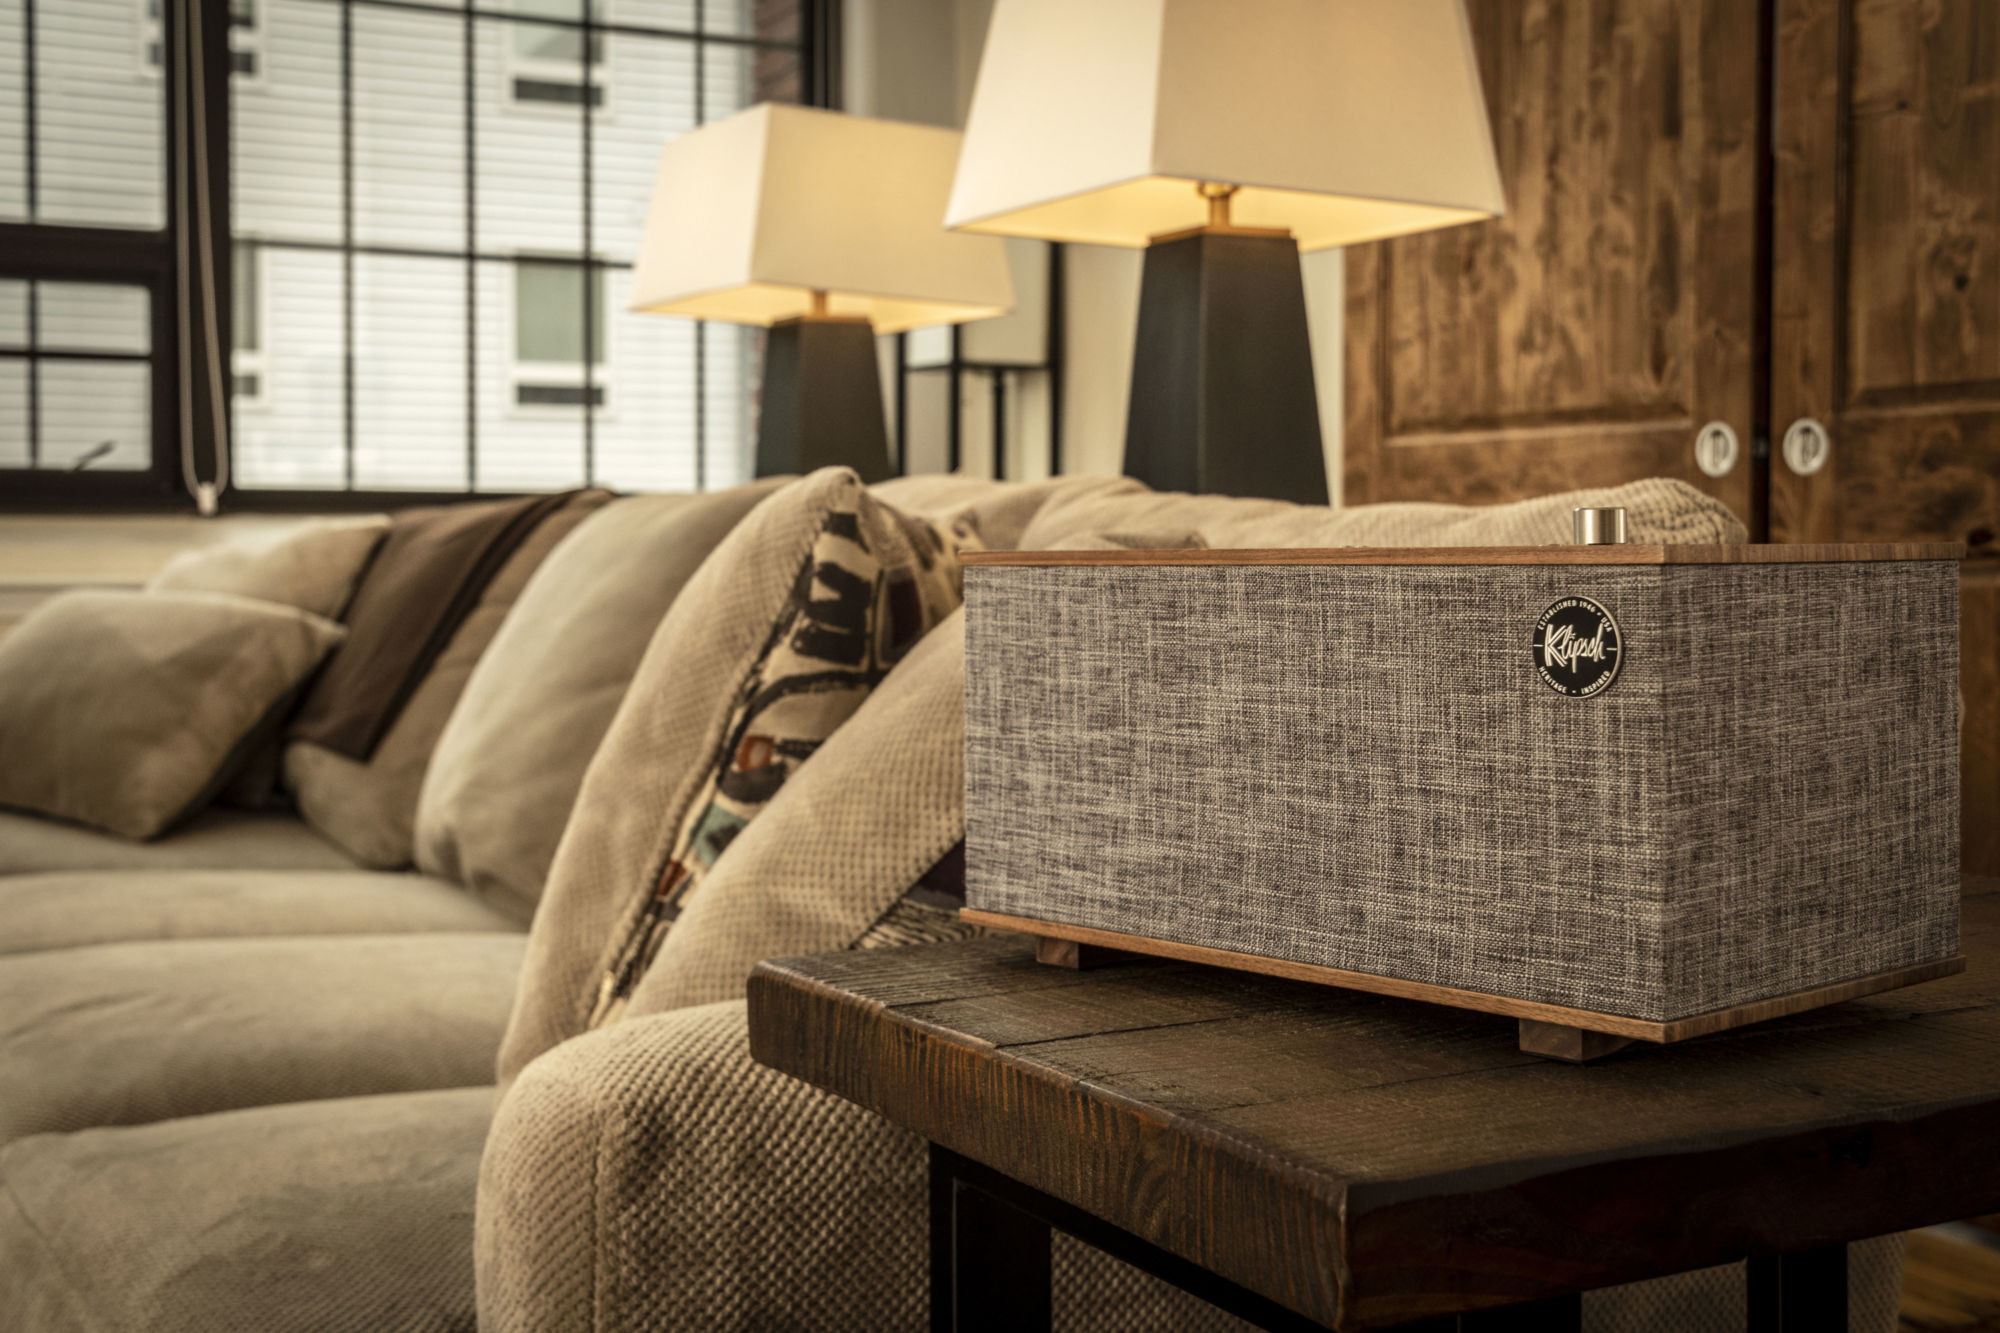 Klipsch The Three Google Assistant in a living room